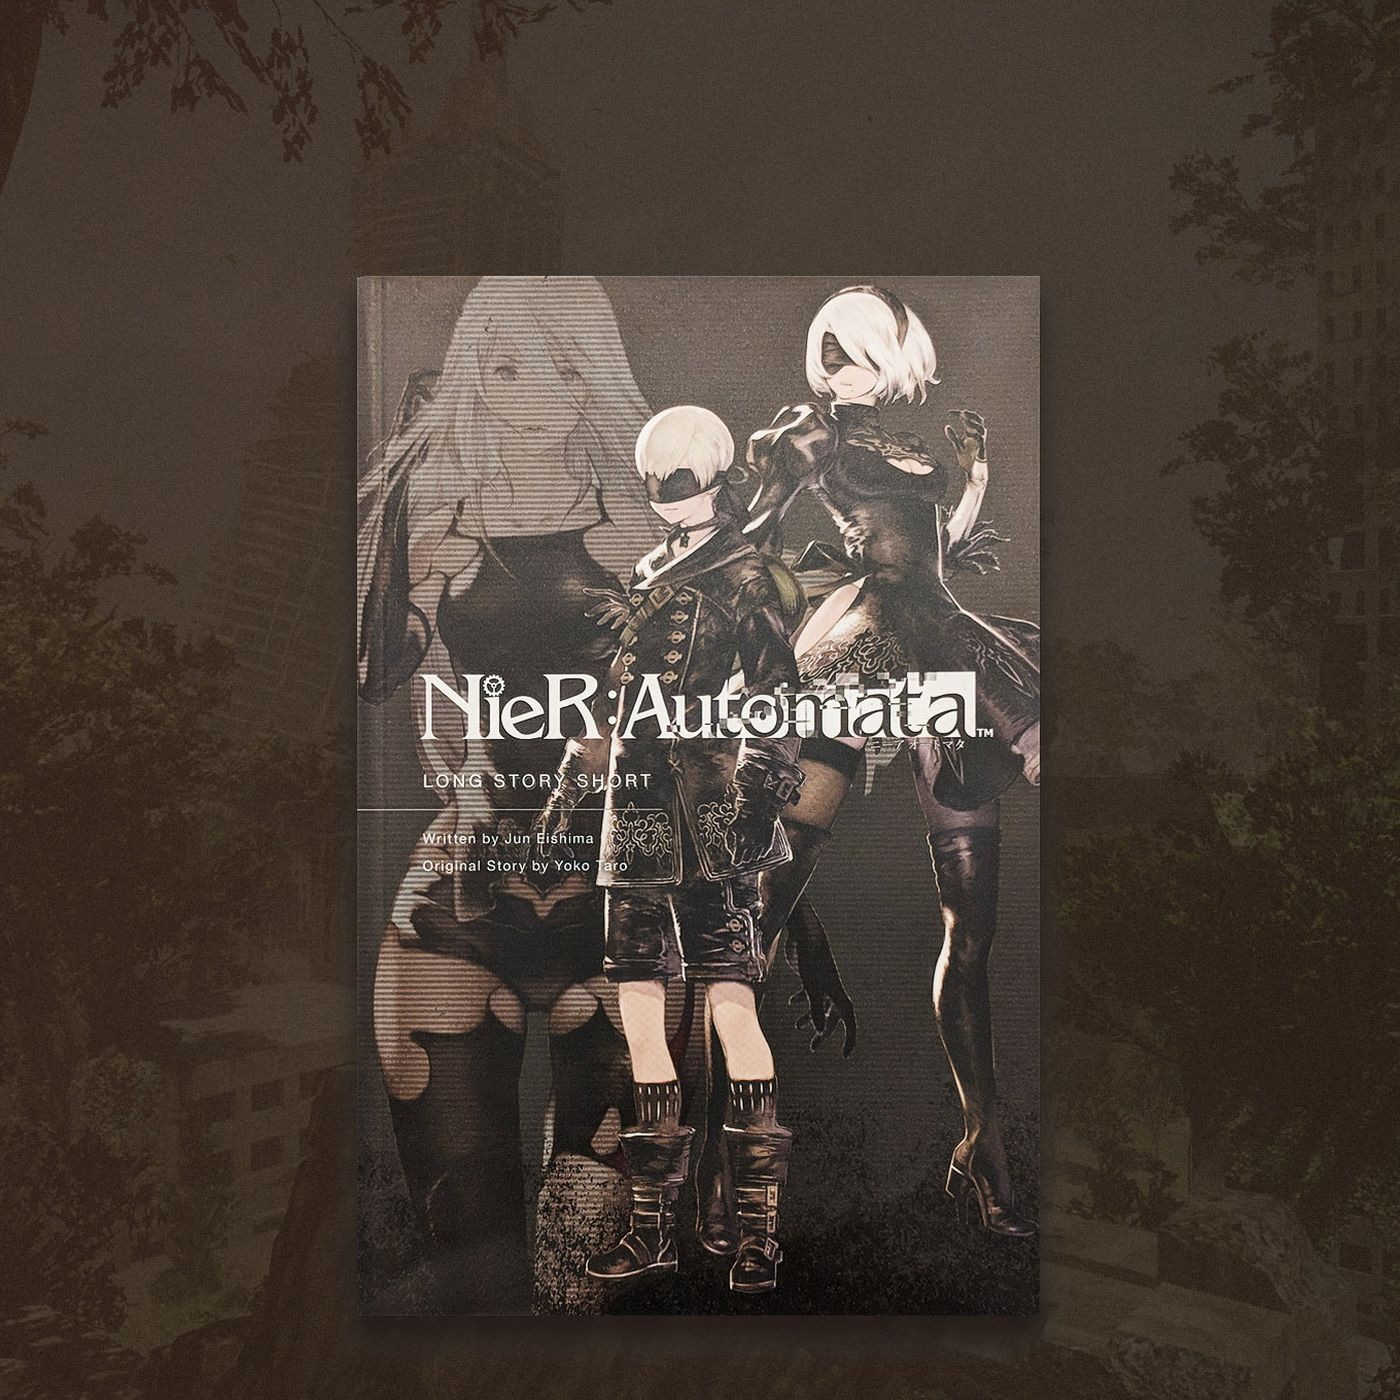 The Nier: Automata novel gives fans yet another playthrough